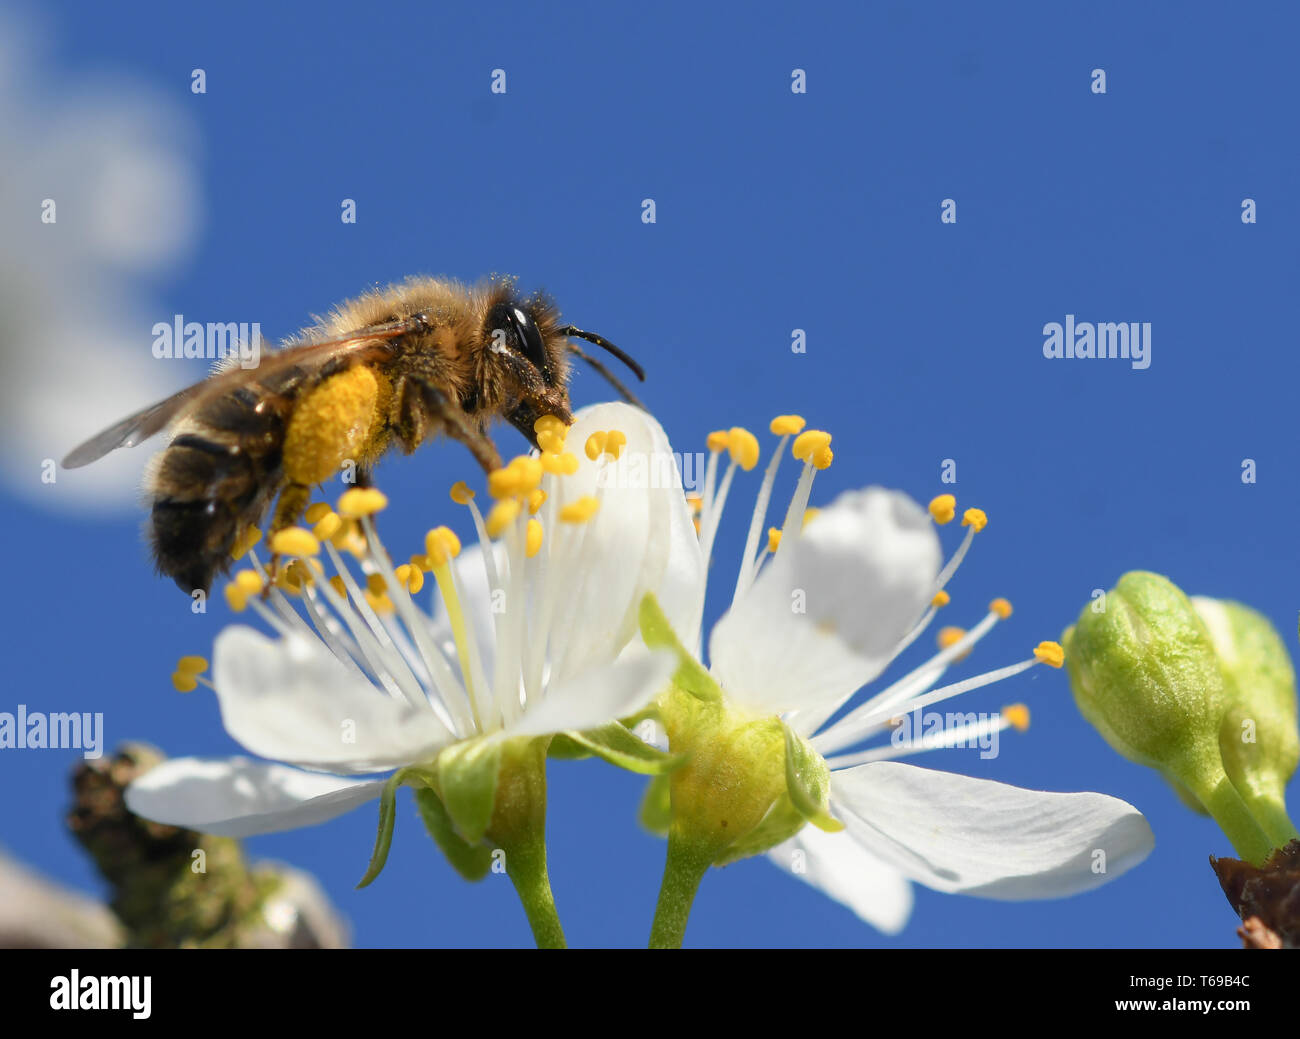 close-up of a lonely bee feeding on the flower of a plum tree - Stock Image